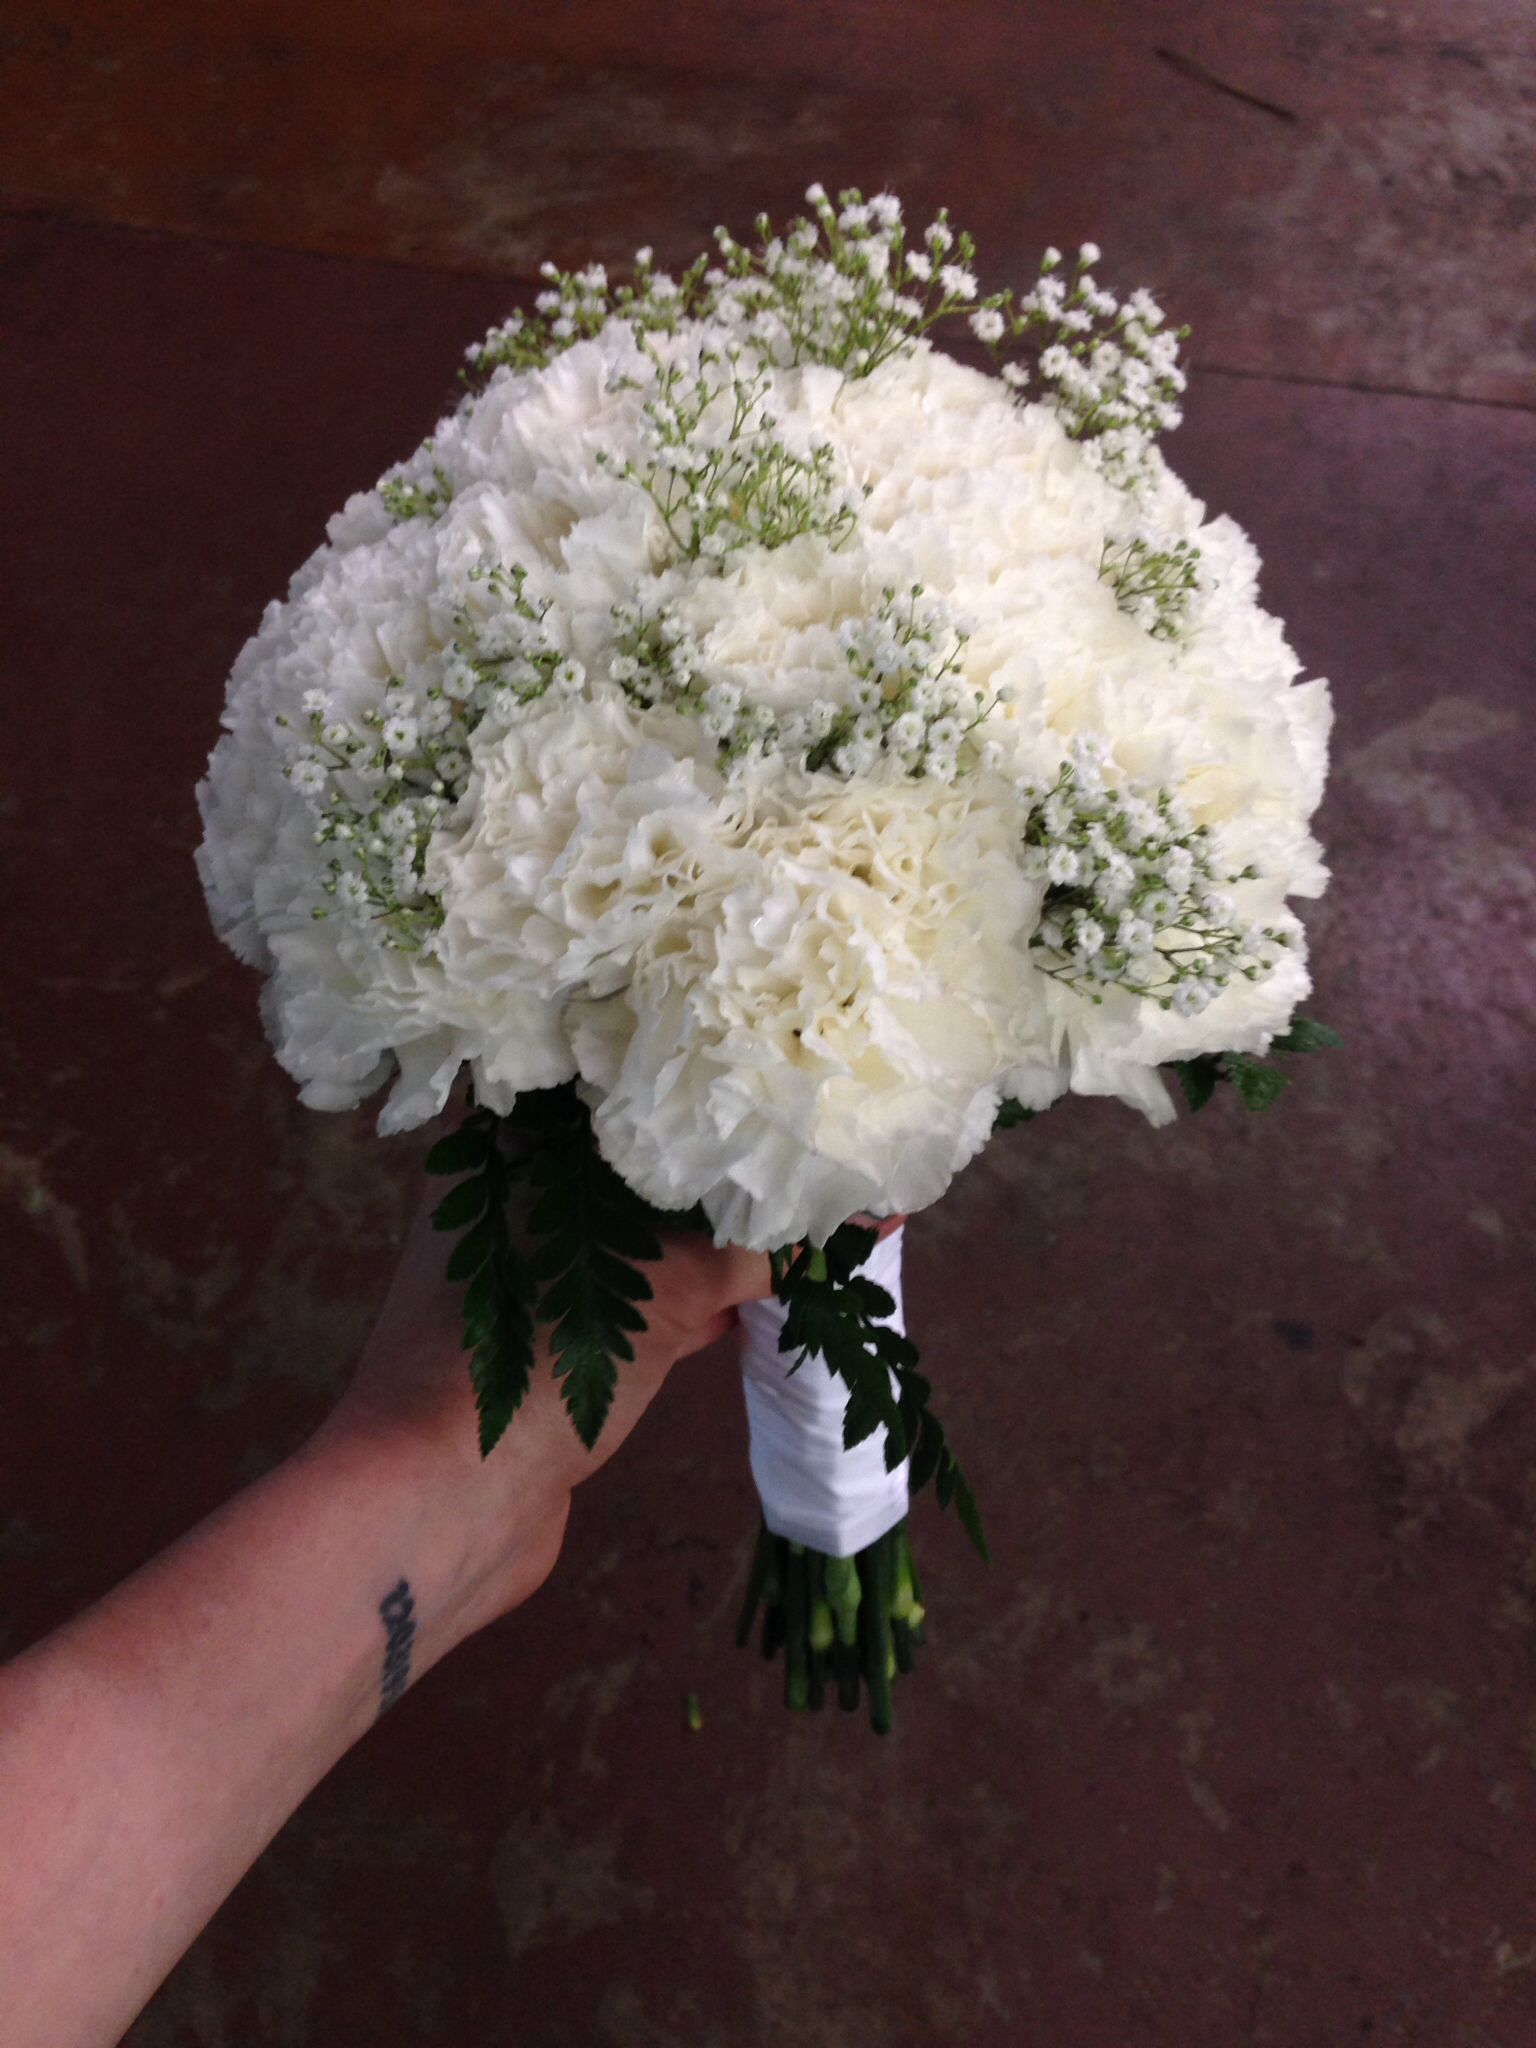 Bridal Bouquet White Carnations Babies Breath All White Wedding Flowers Memphis Carnation Wedding Flowers Flower Bouquet Wedding Neutral Wedding Flowers